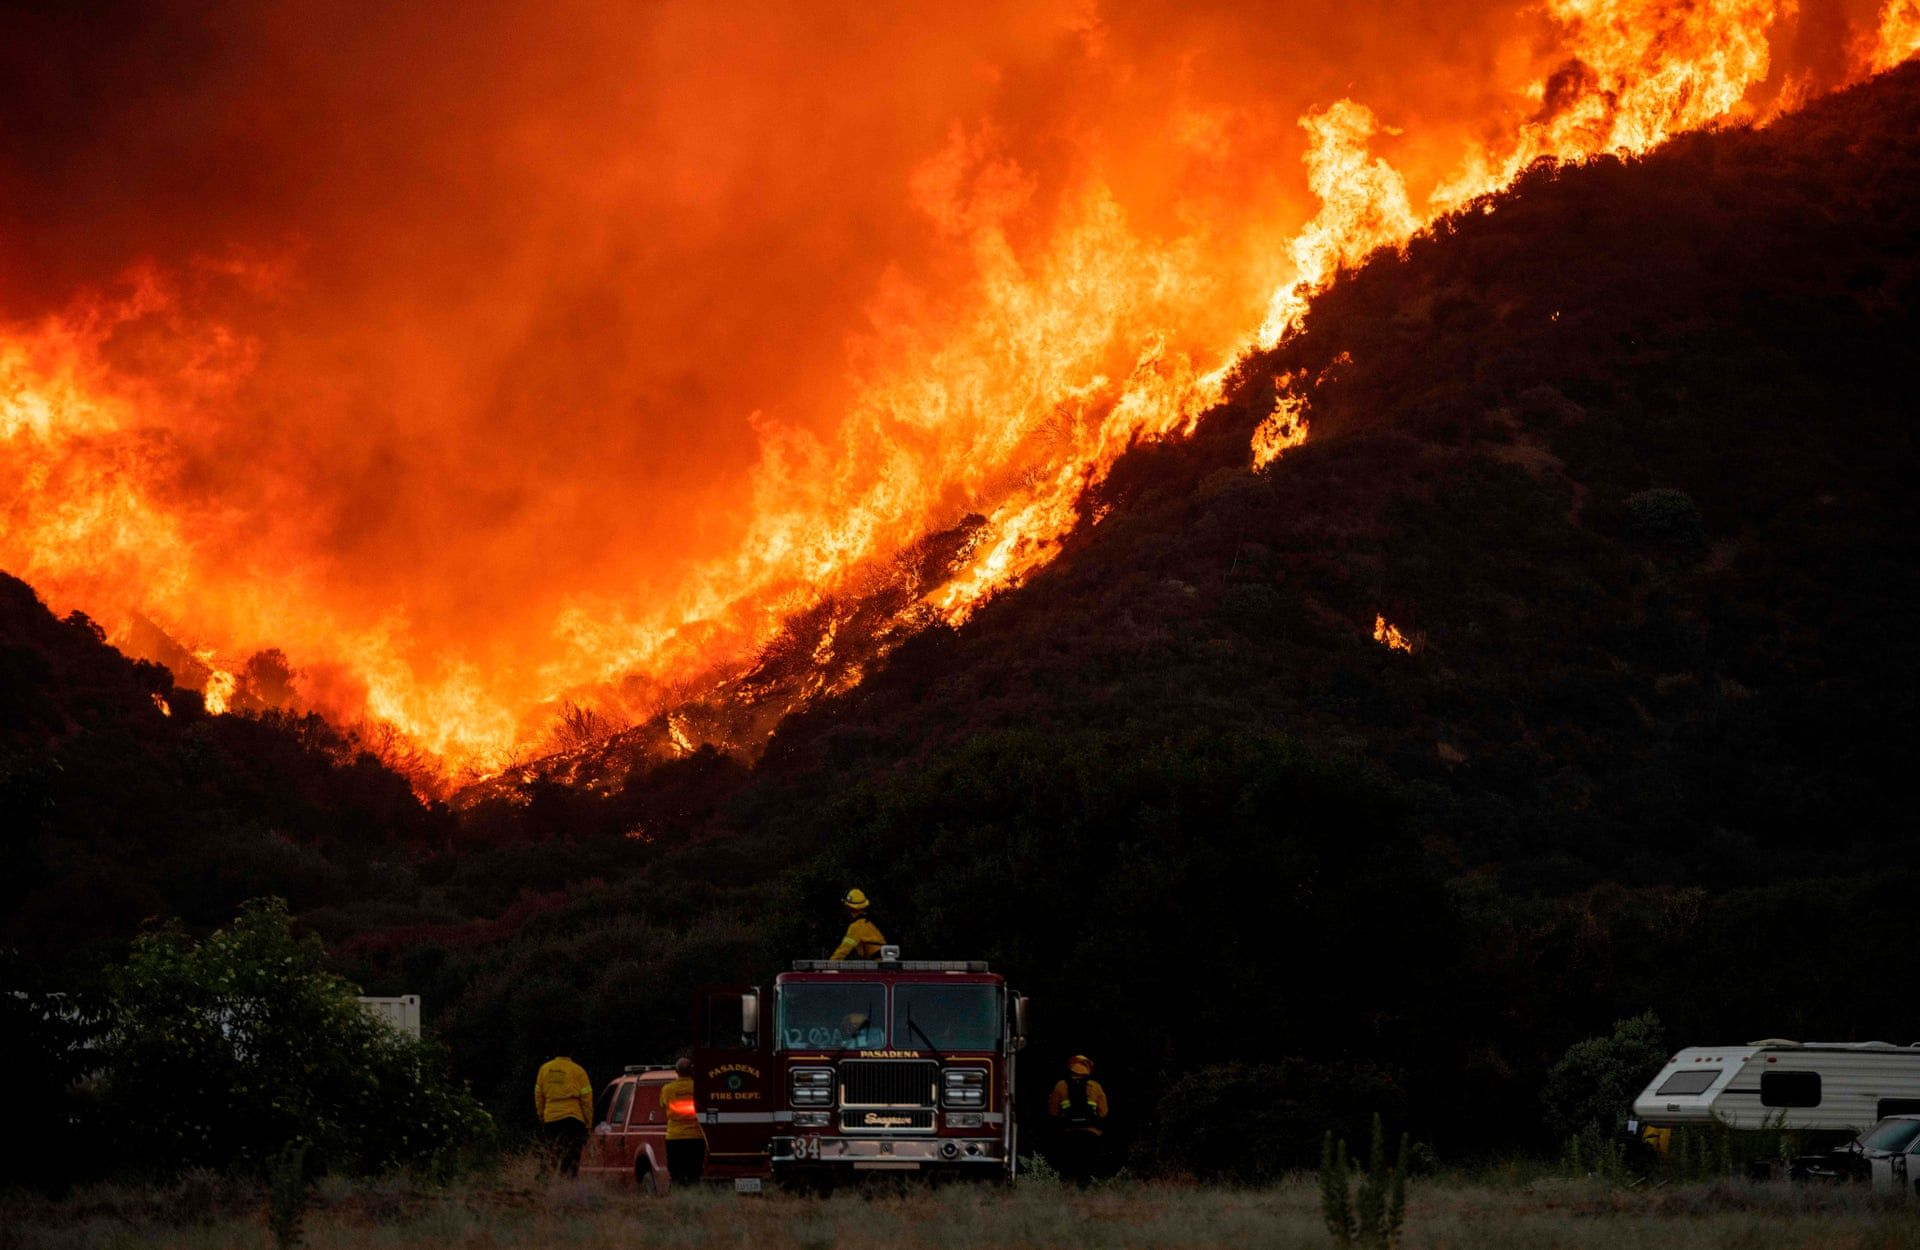 California S Apple Fire The Wildfire In Pictures In 2020 San Bernardino National Forest California Wildfires California